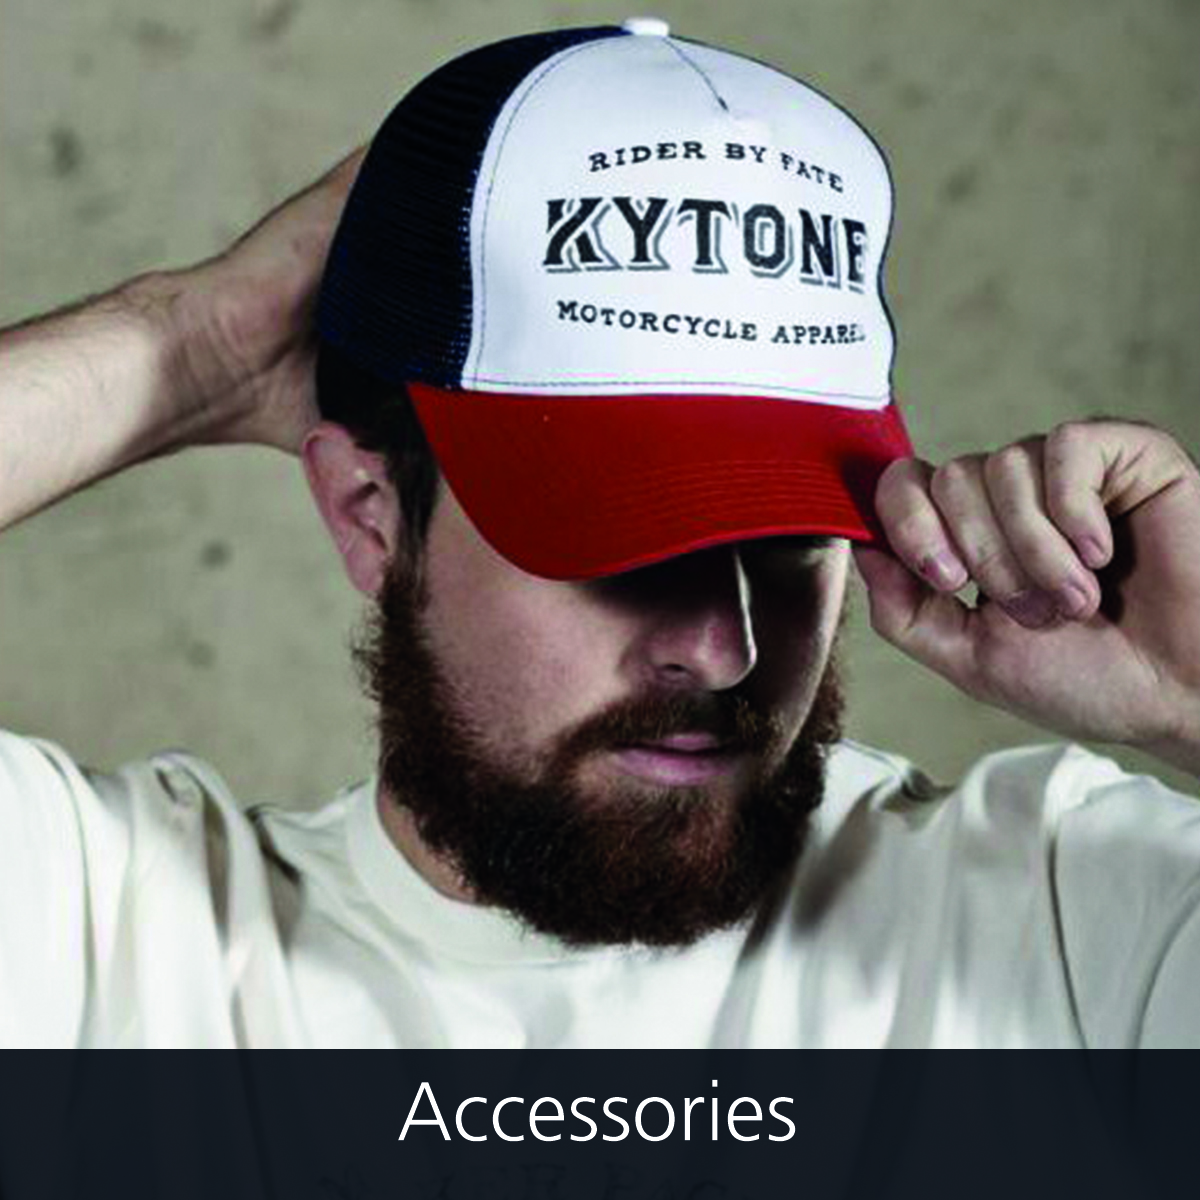 Accessories image